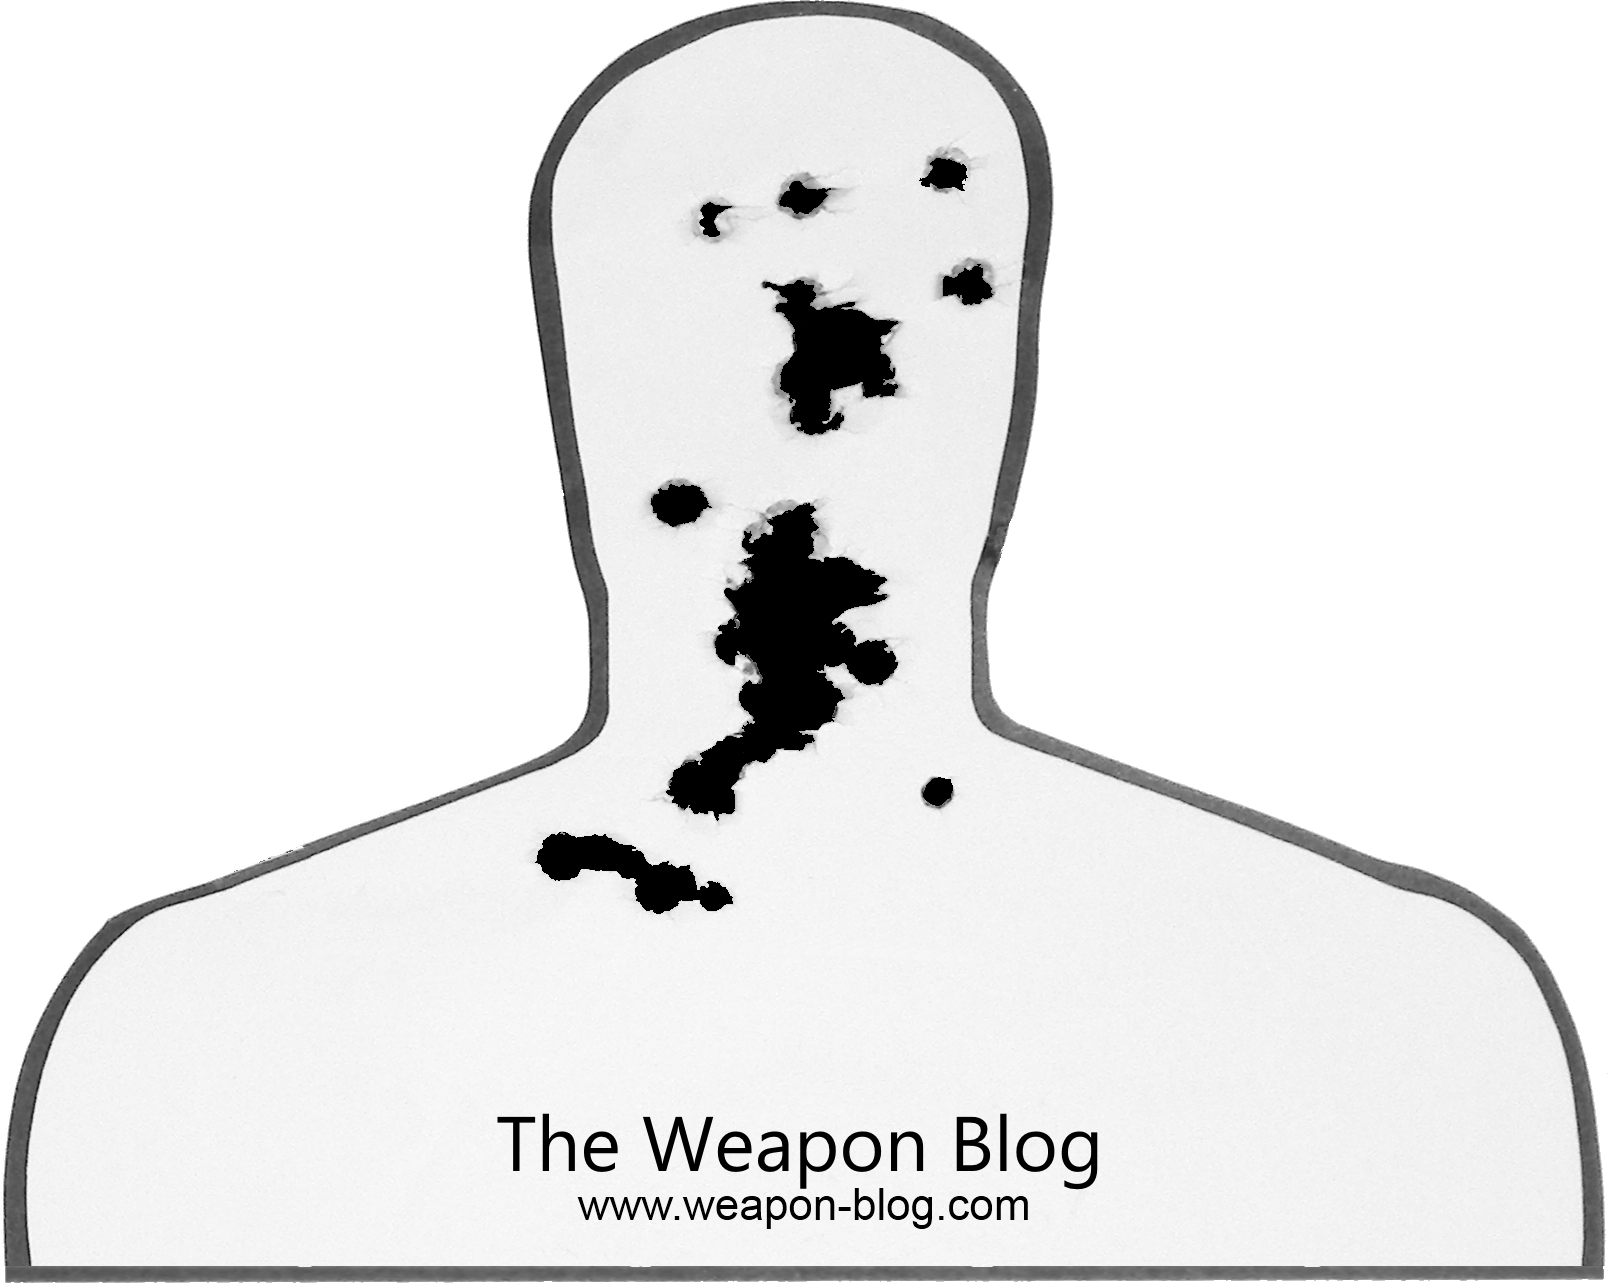 The Weapon Blog